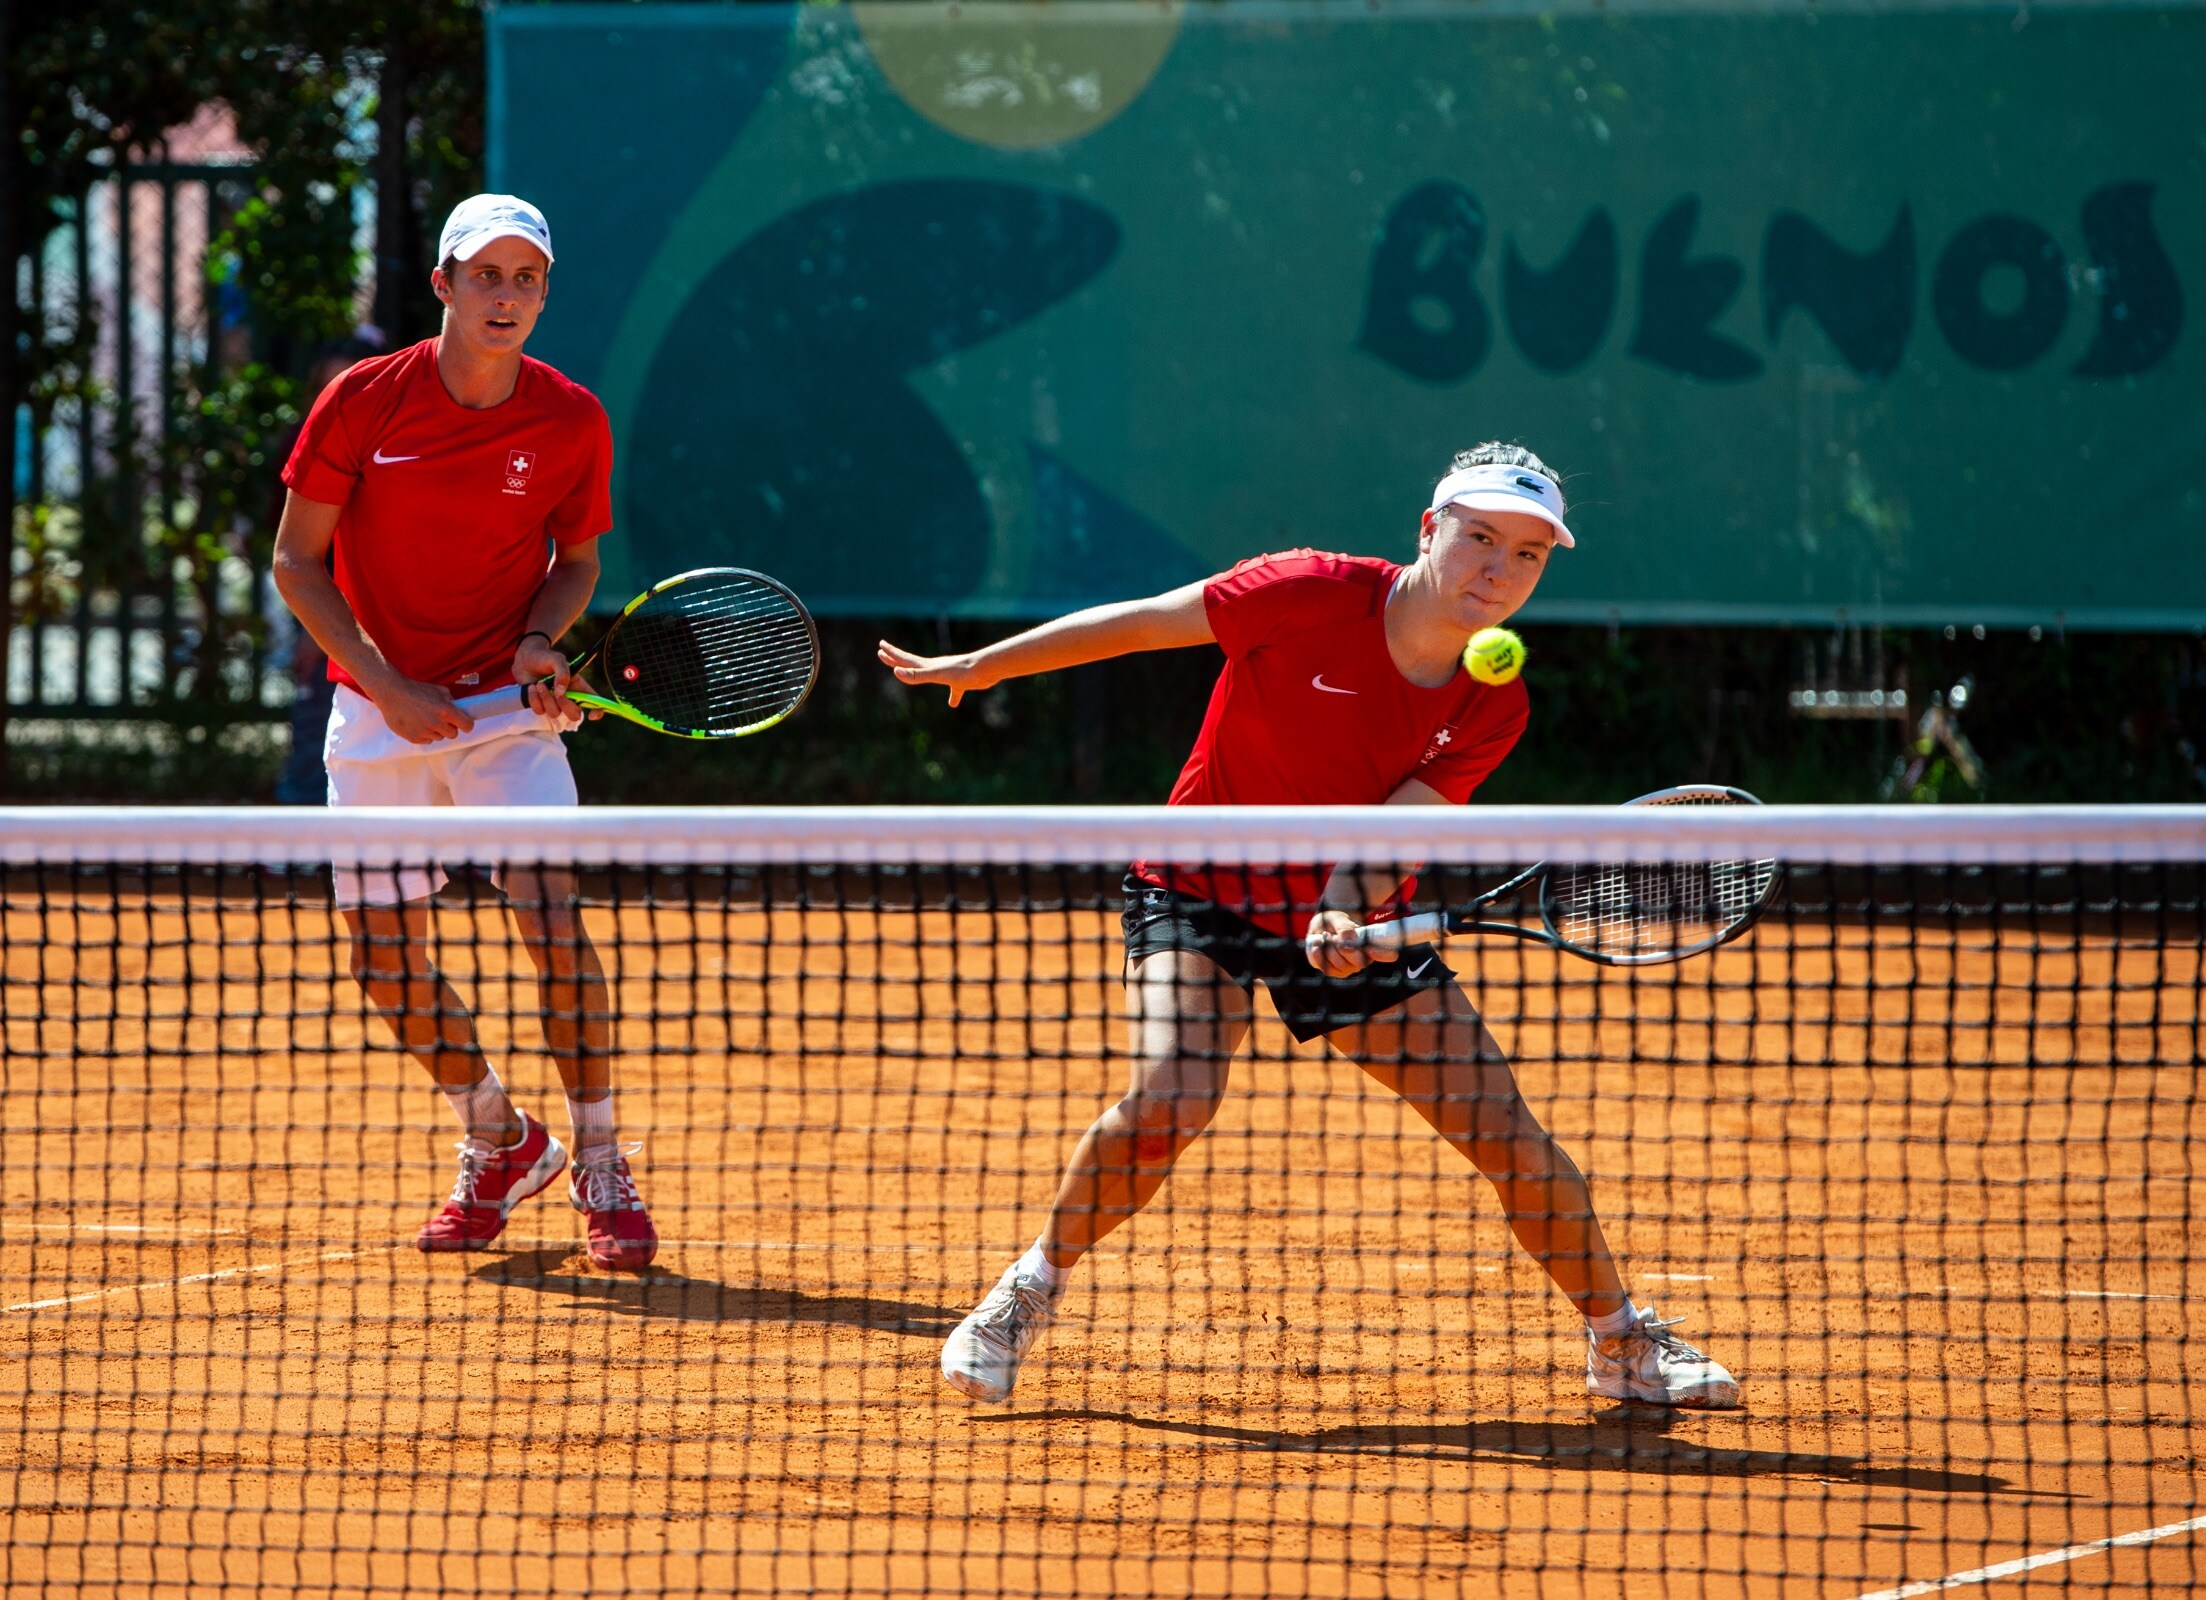 Buenos Aires 2018 - Tennis - Mixed Doubles